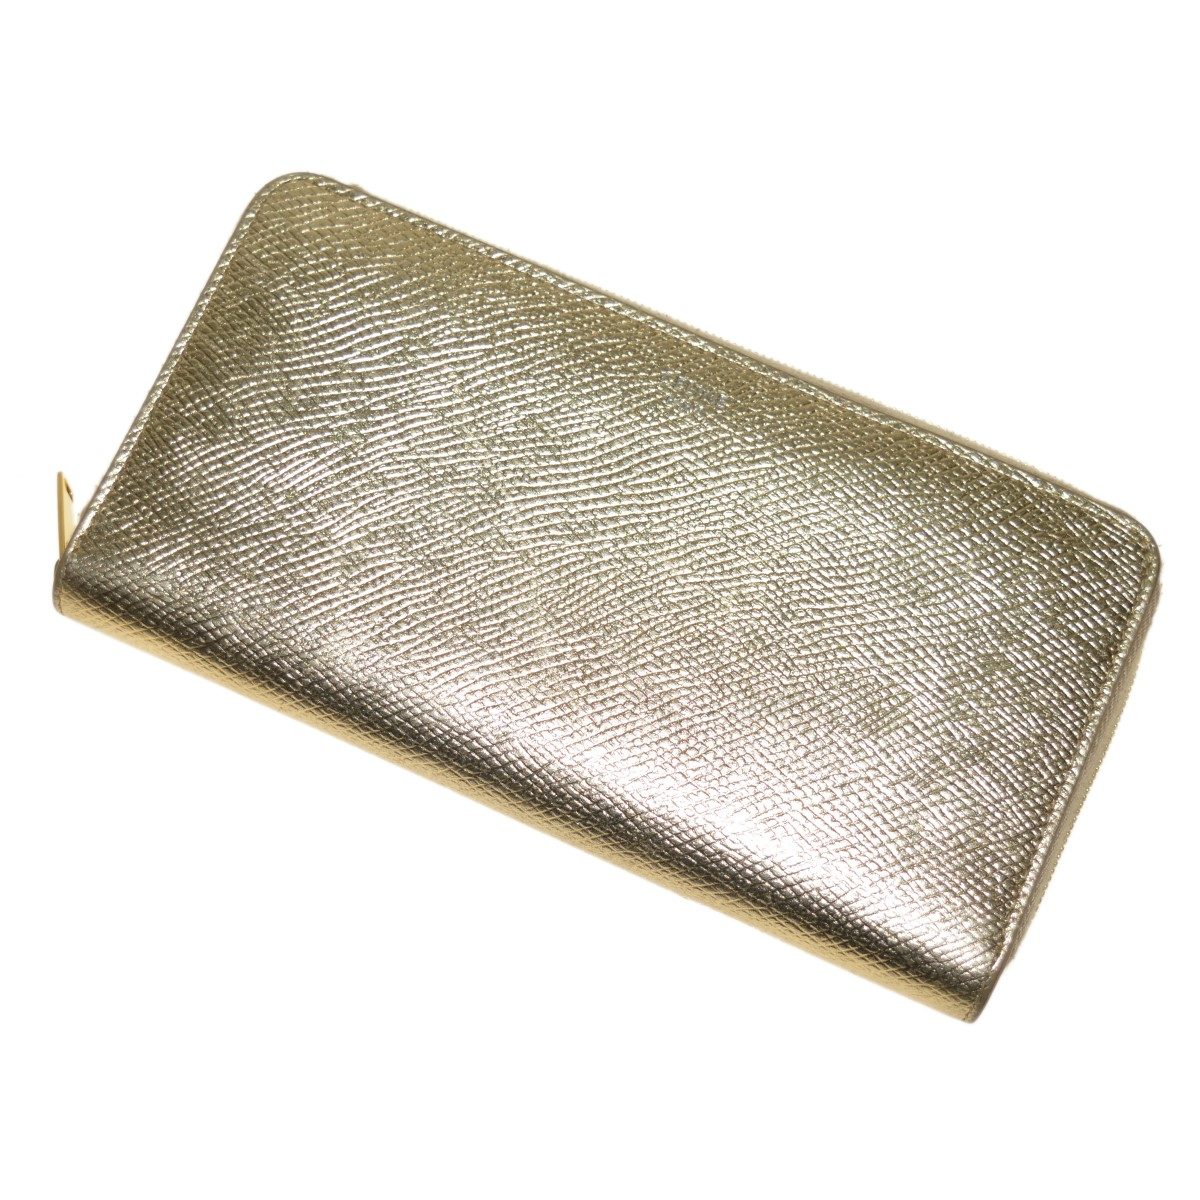 【中古】CELINE LARGE ZIPPED MULTIFUNCITION WALLET ゴールド 【270320】(セリーヌ)